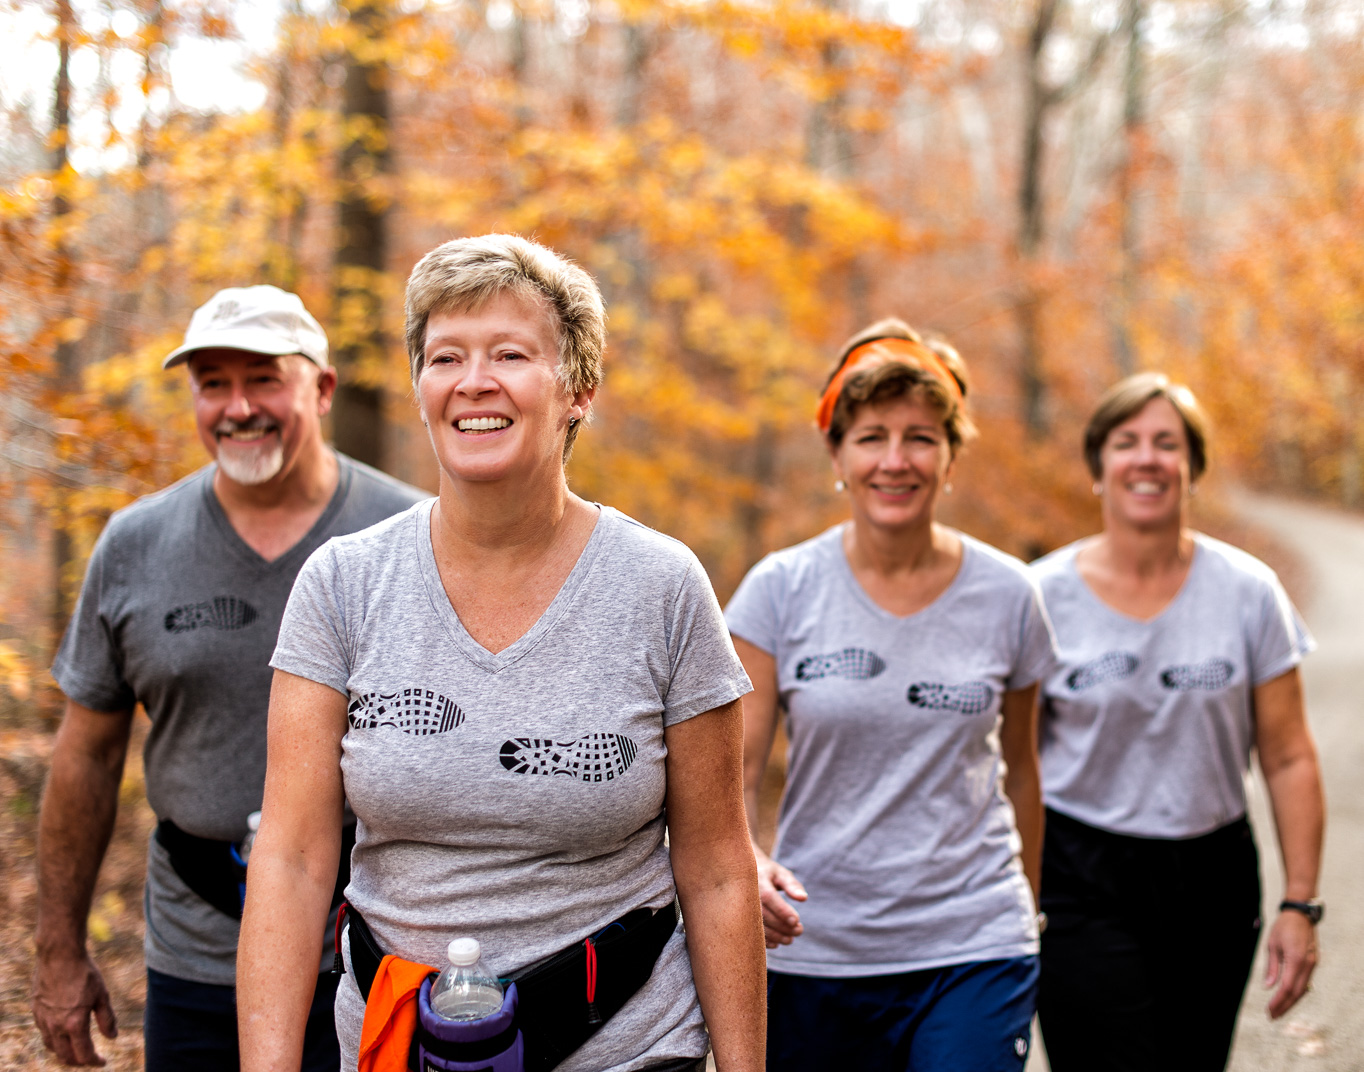 Connecticut woman with Multiple Sclerosis walks in woods on a fall day with walking team